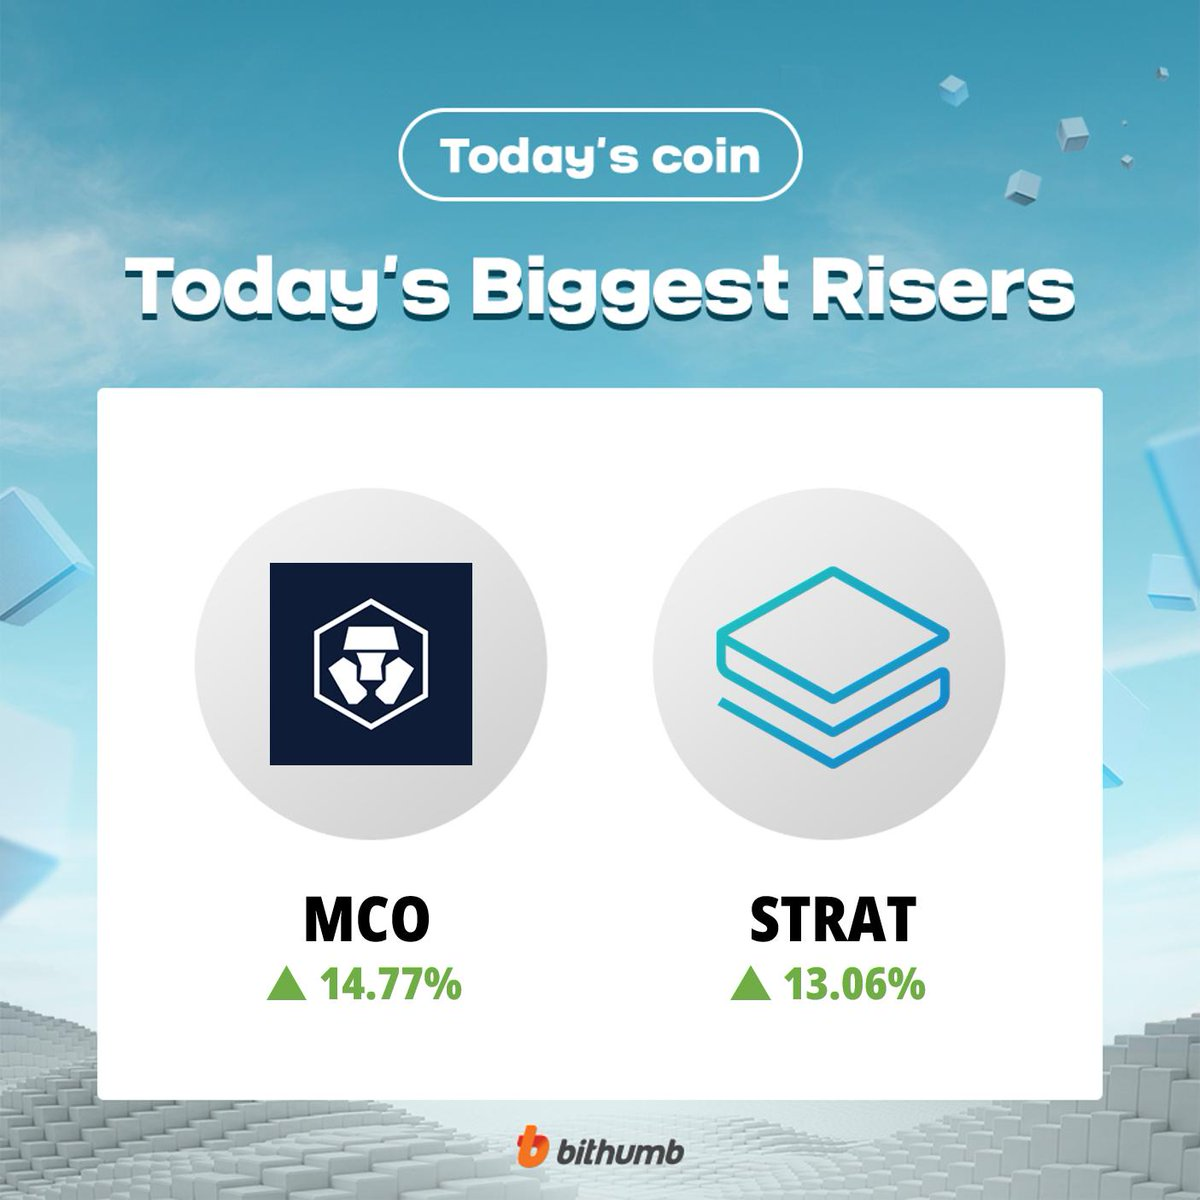 strat coin cryptocurrency